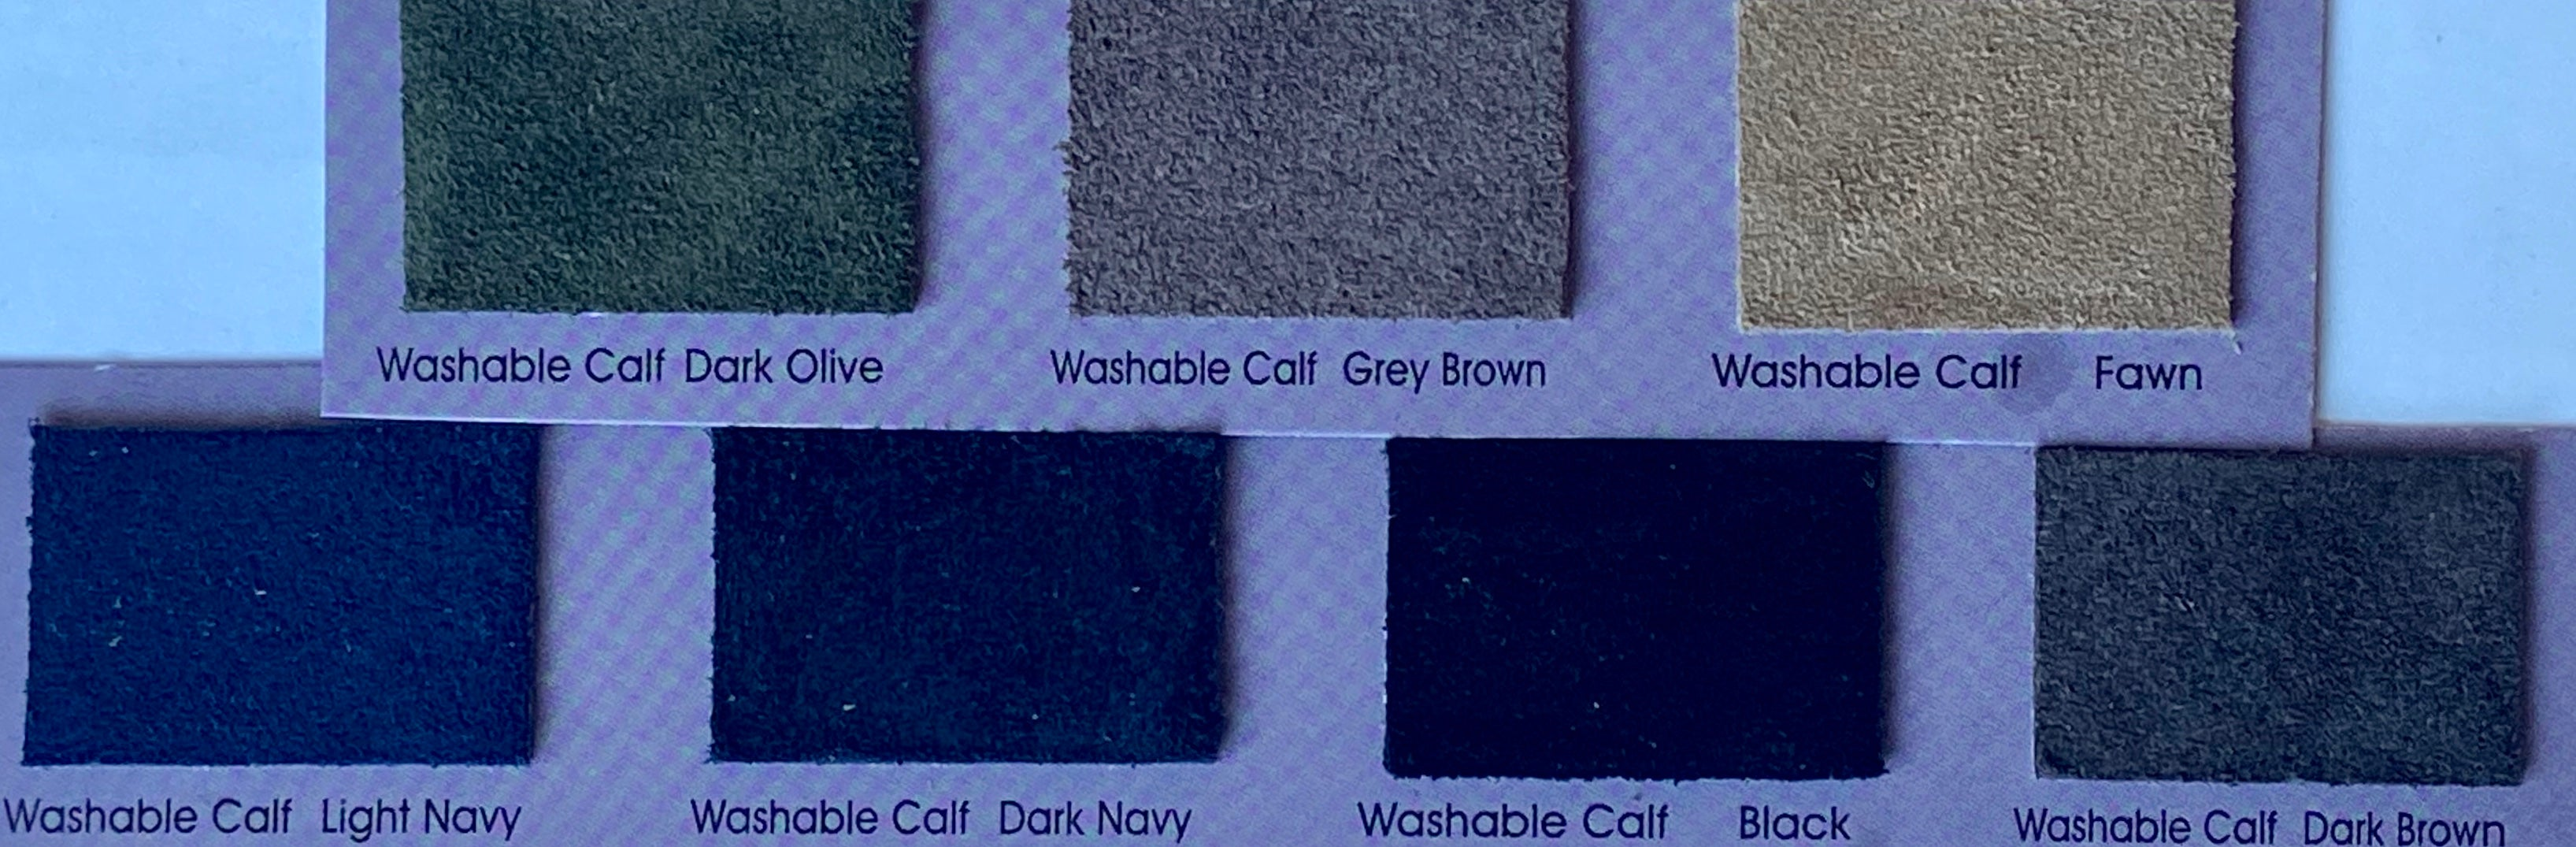 Washable Grey Brown Split Suede : (1.1mm-1.2mm) Silky & Soft Italian Calf Suede Perfect For Suede Shoes , Suede Bags, Suede Leather Crafts , Suede Accessories.